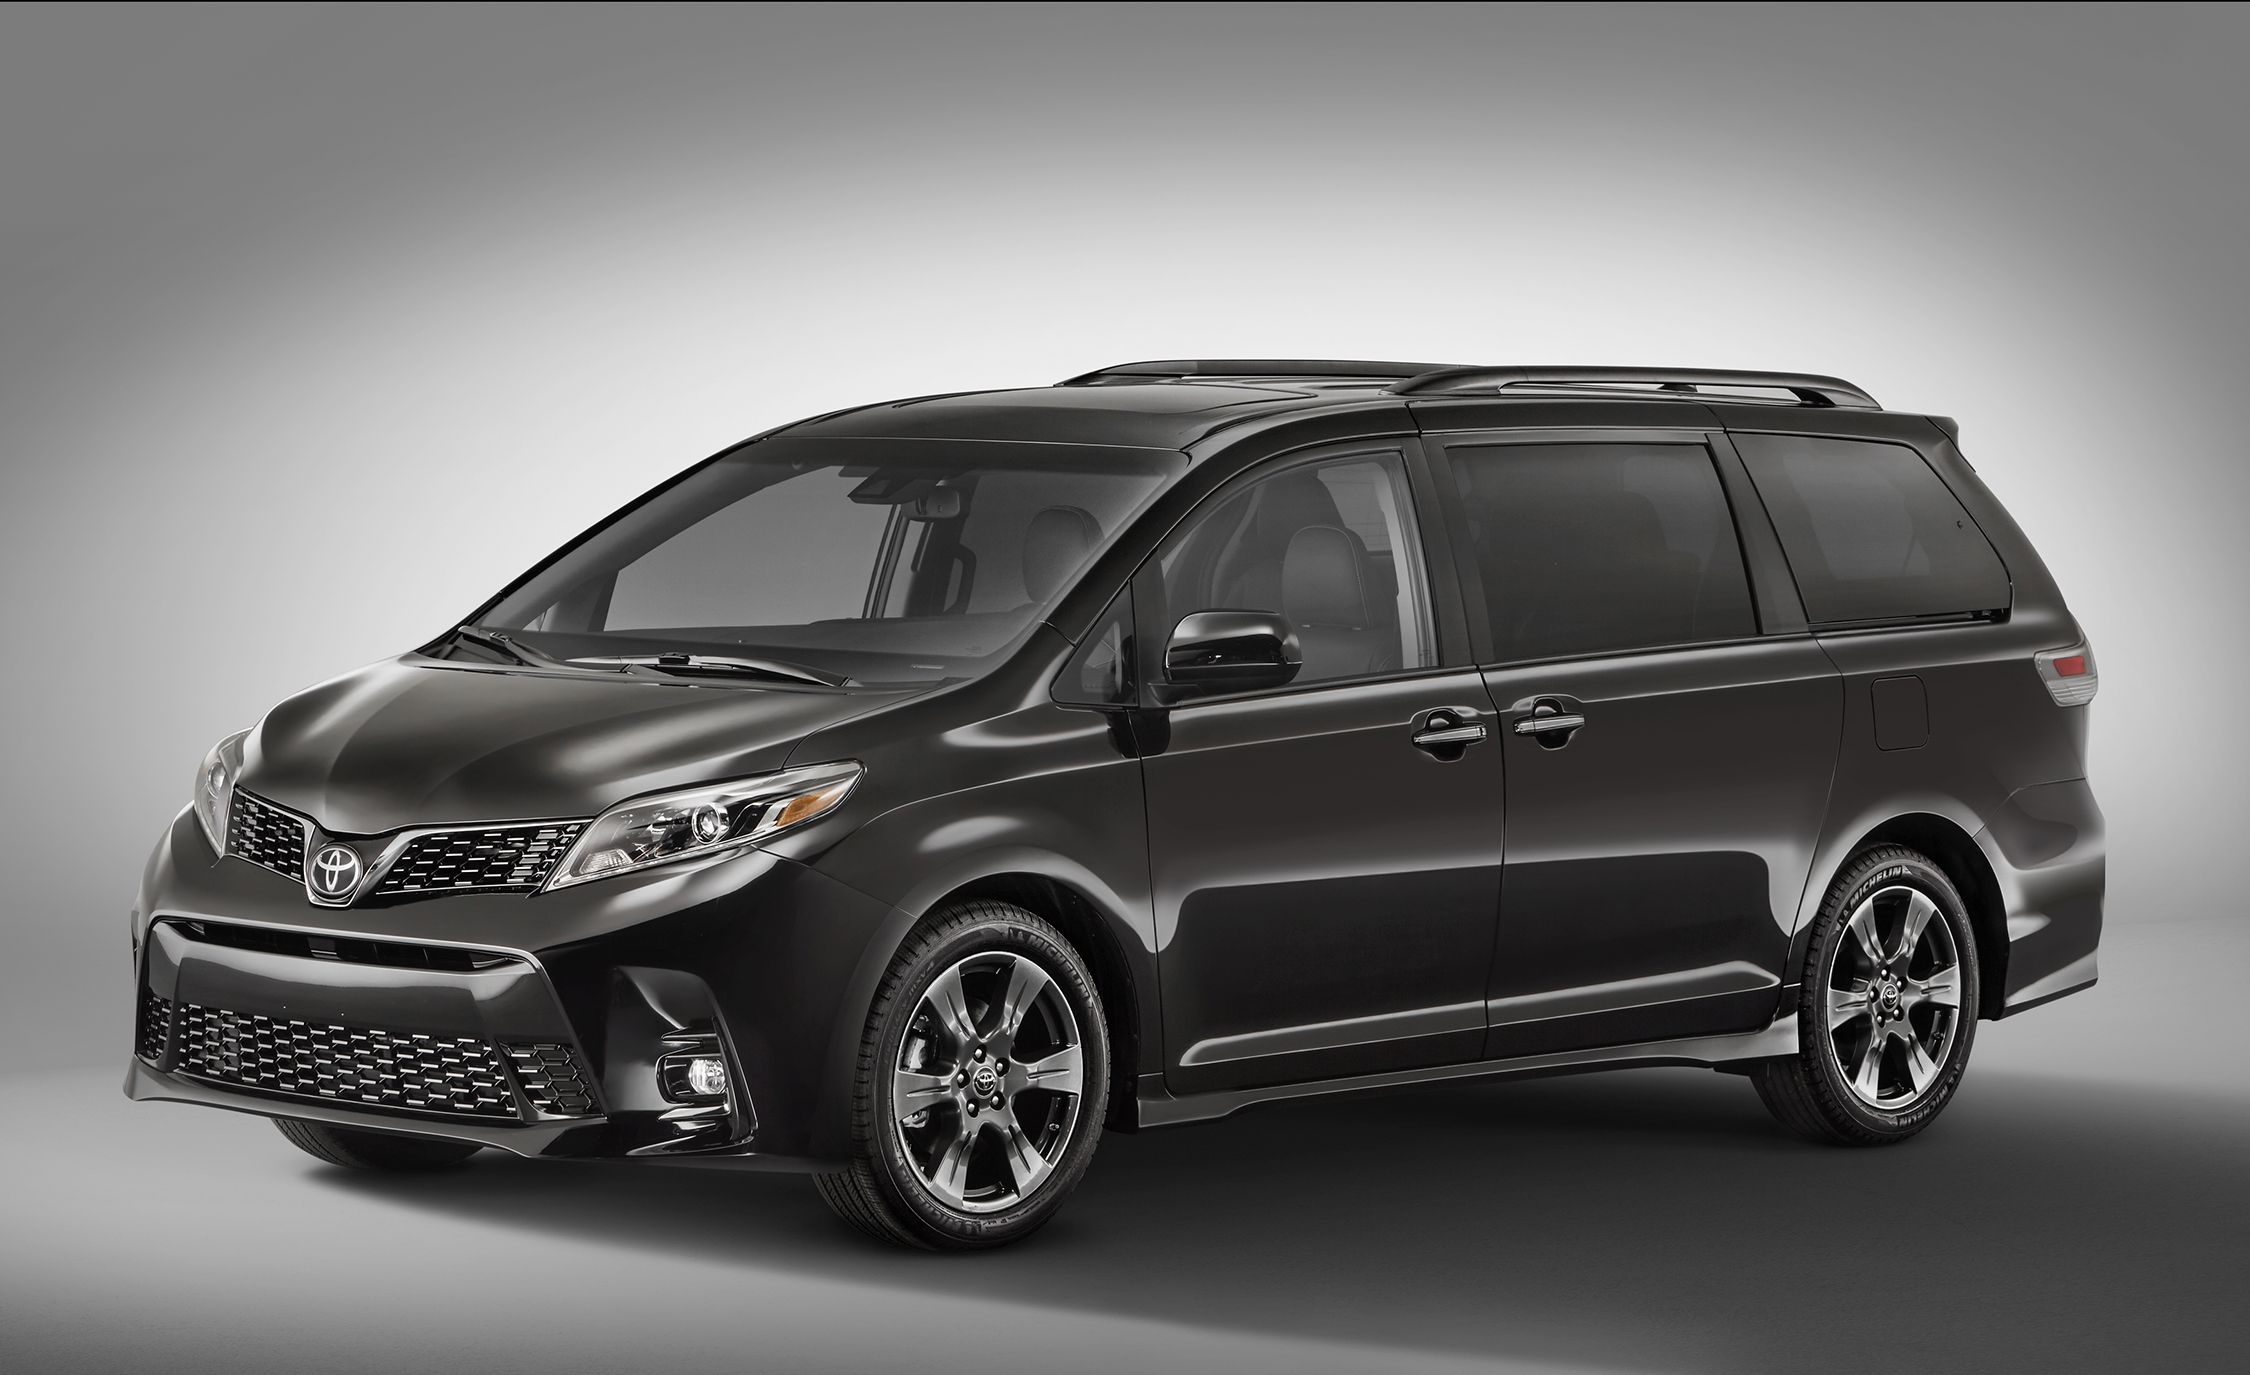 Toyota Sienna Service Manual: Removal